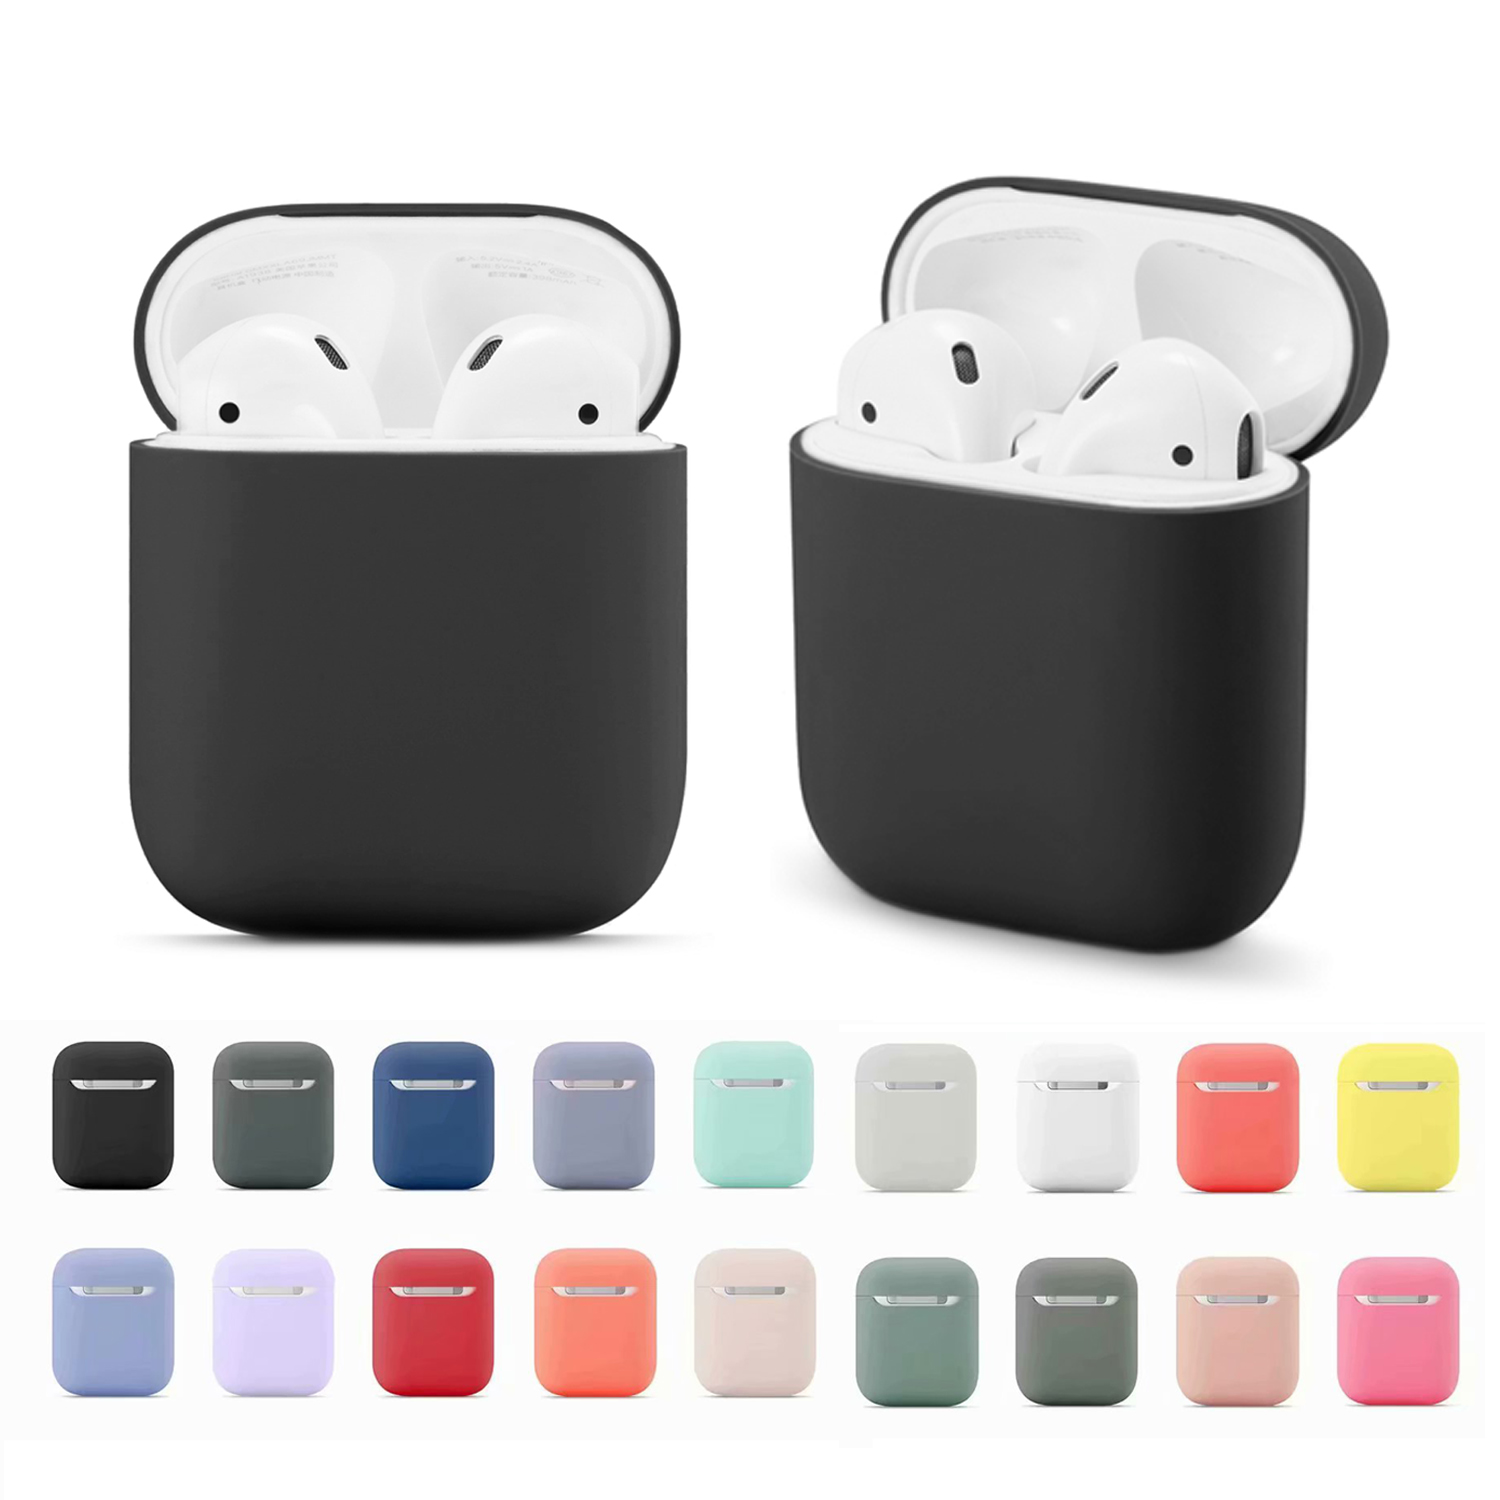 Soft Silicone Cases For Apple Airpods <font><b>1</b></font>/2 Protective Bluetooth Wireless Earphone Cover For Apple <font><b>Air</b></font> <font><b>Pods</b></font> Charging Box Bags image